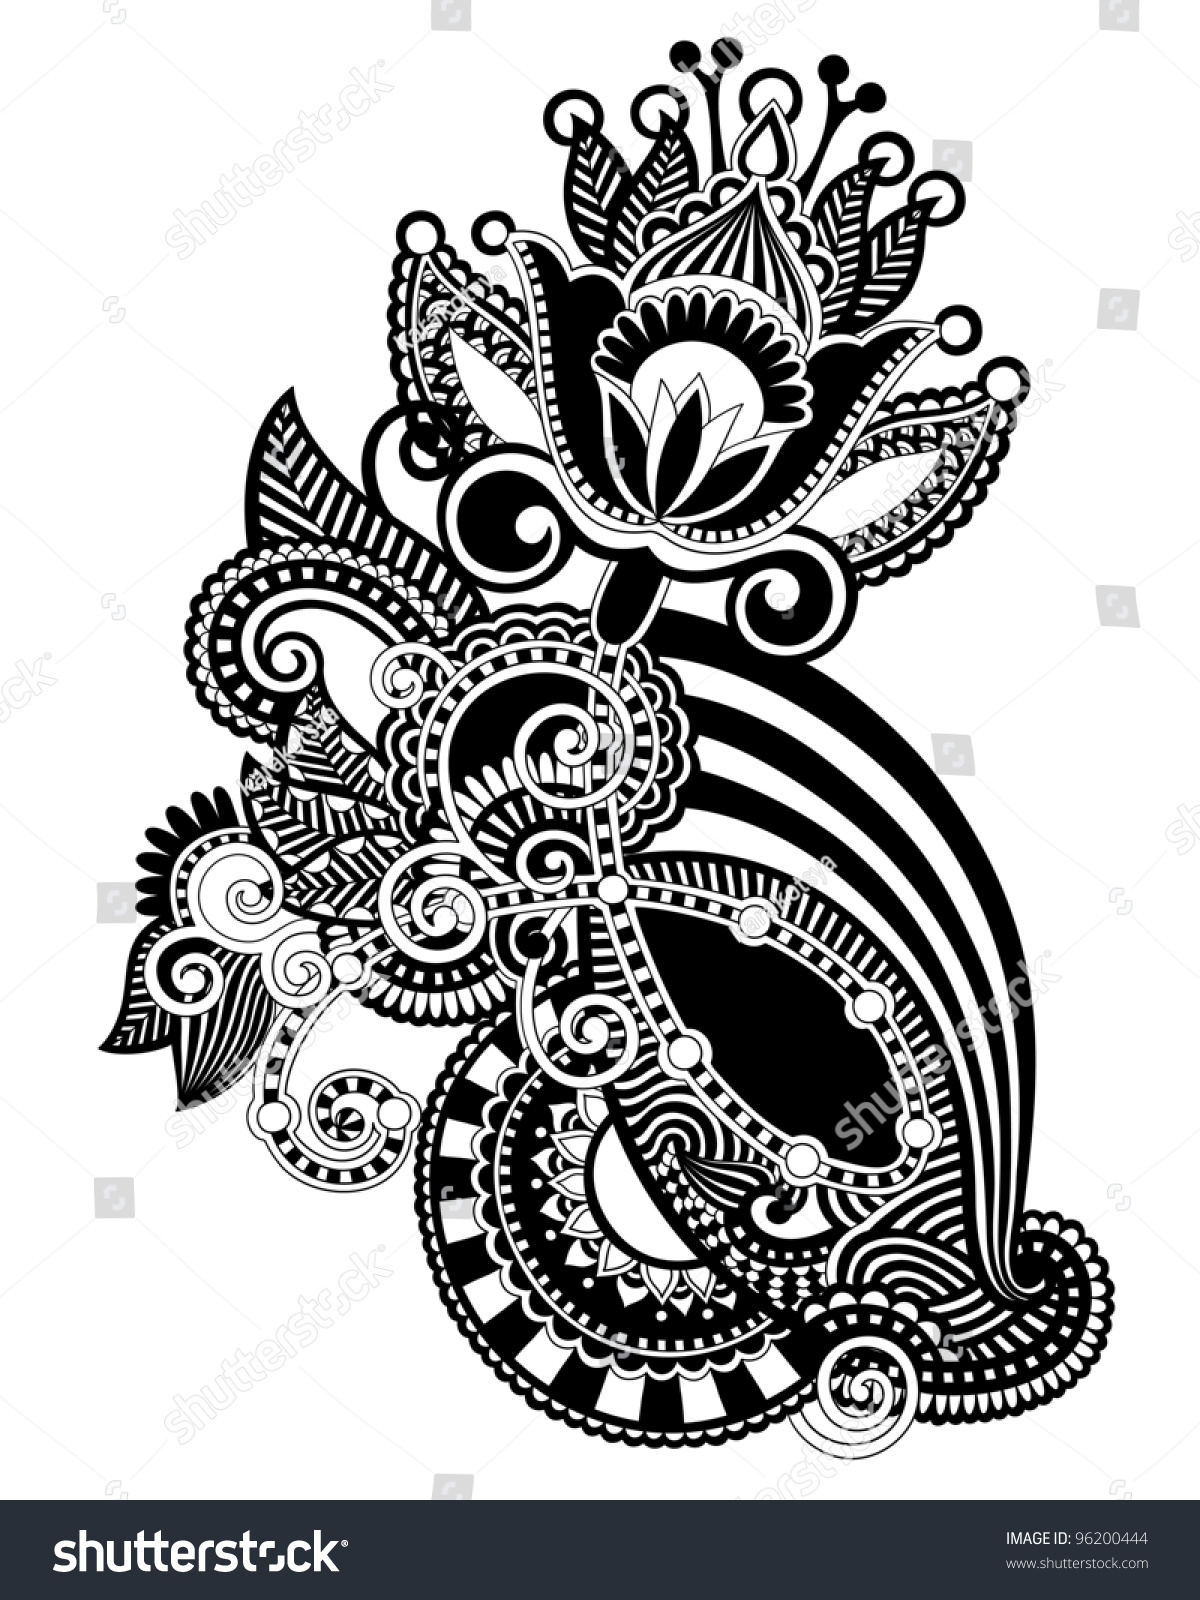 Traditional Flower Line Drawing : Hand draw line art ornate flower stock vector